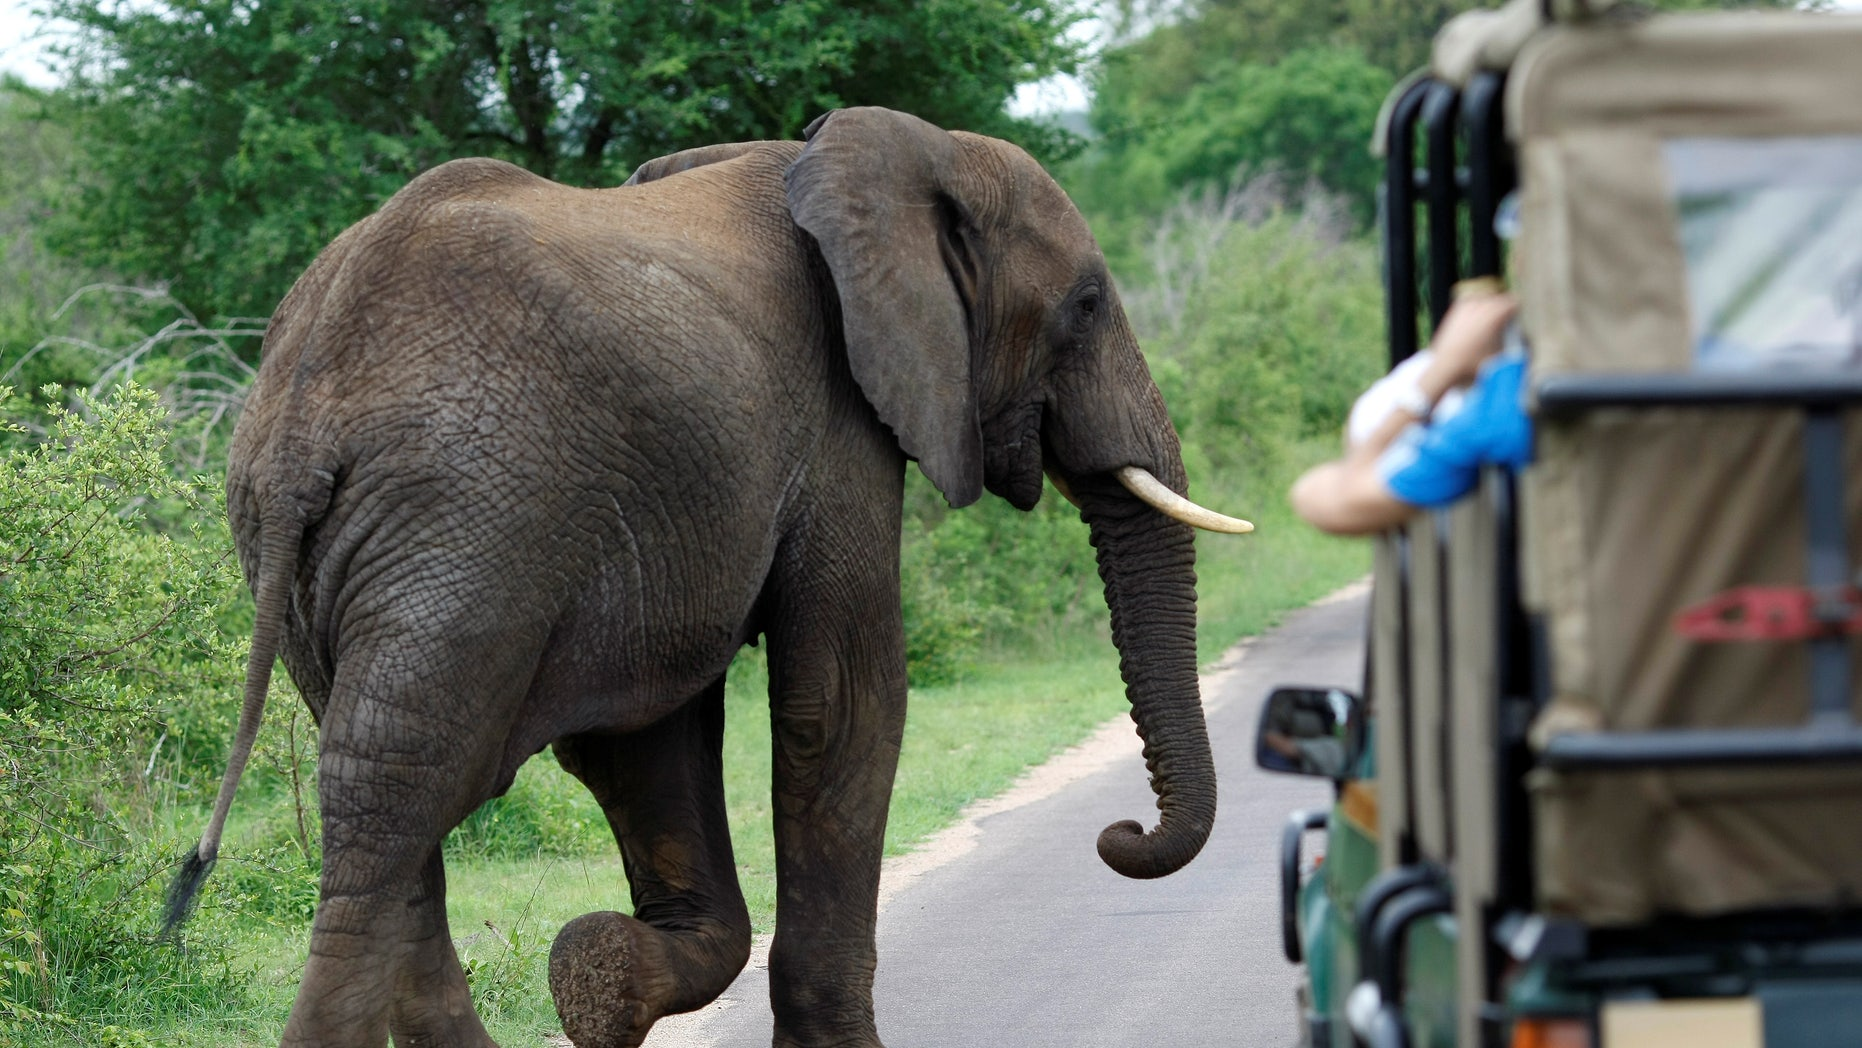 A bull elephant walks past a car filled with tourists in South Africa's Kruger National Park, December 10, 2009.